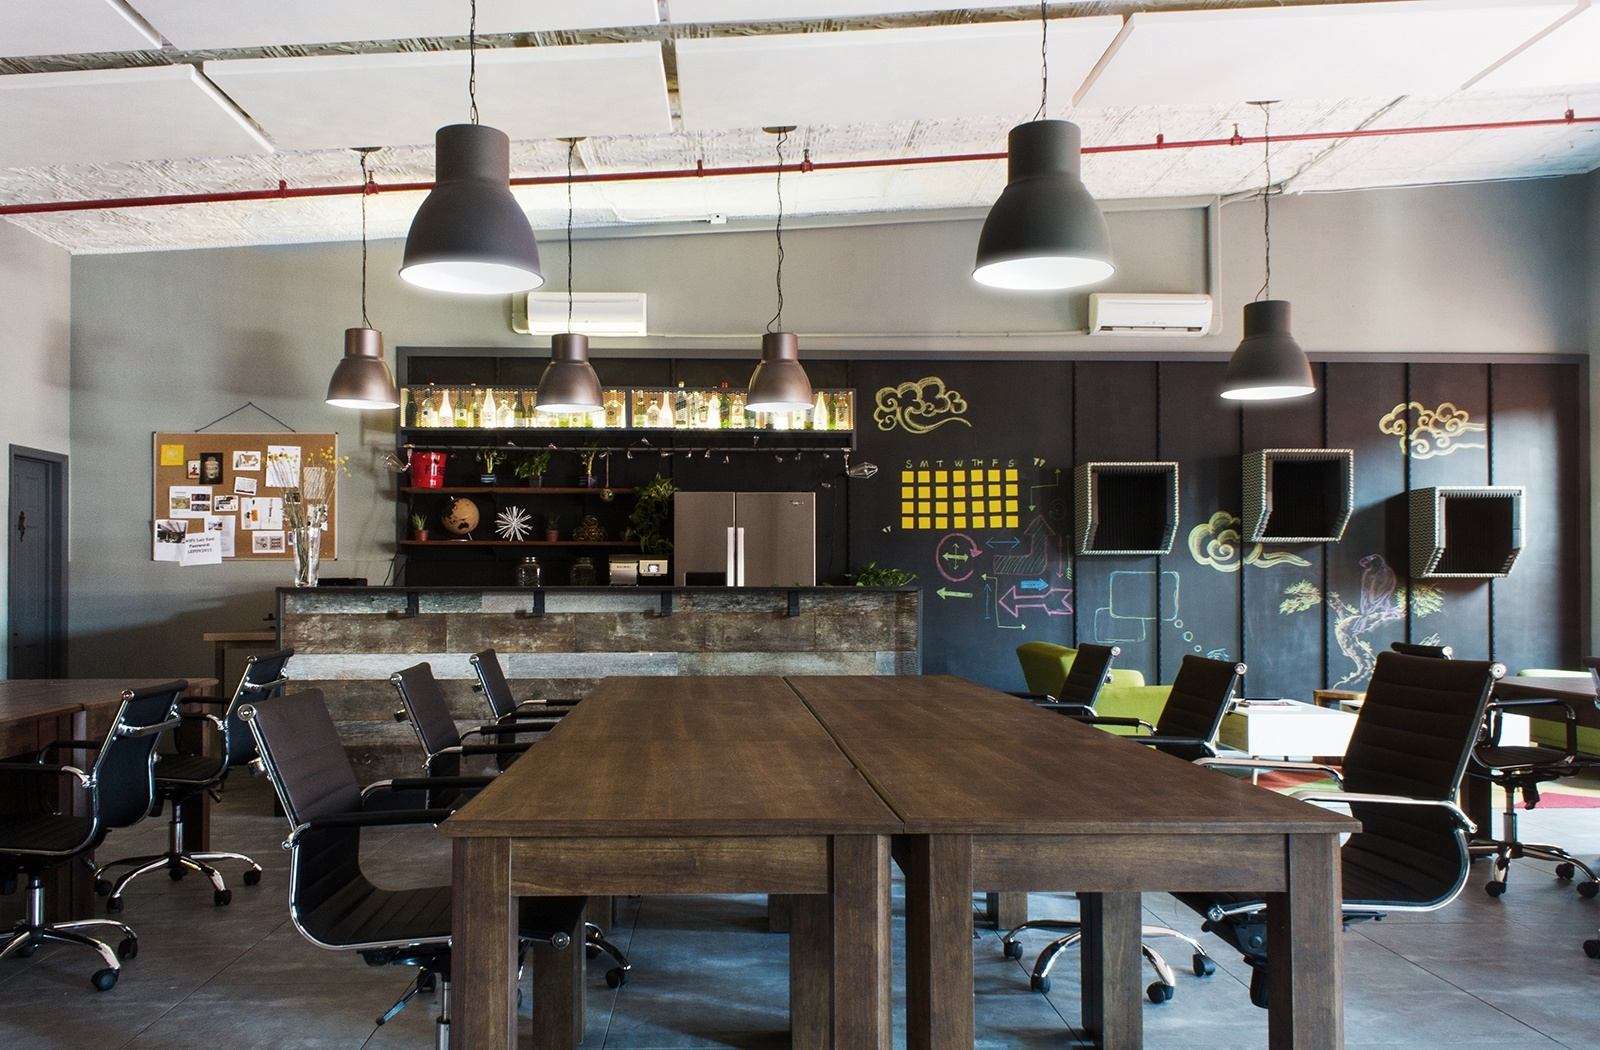 A Look Inside Lair Easts NYC Coworking Space Officelovin